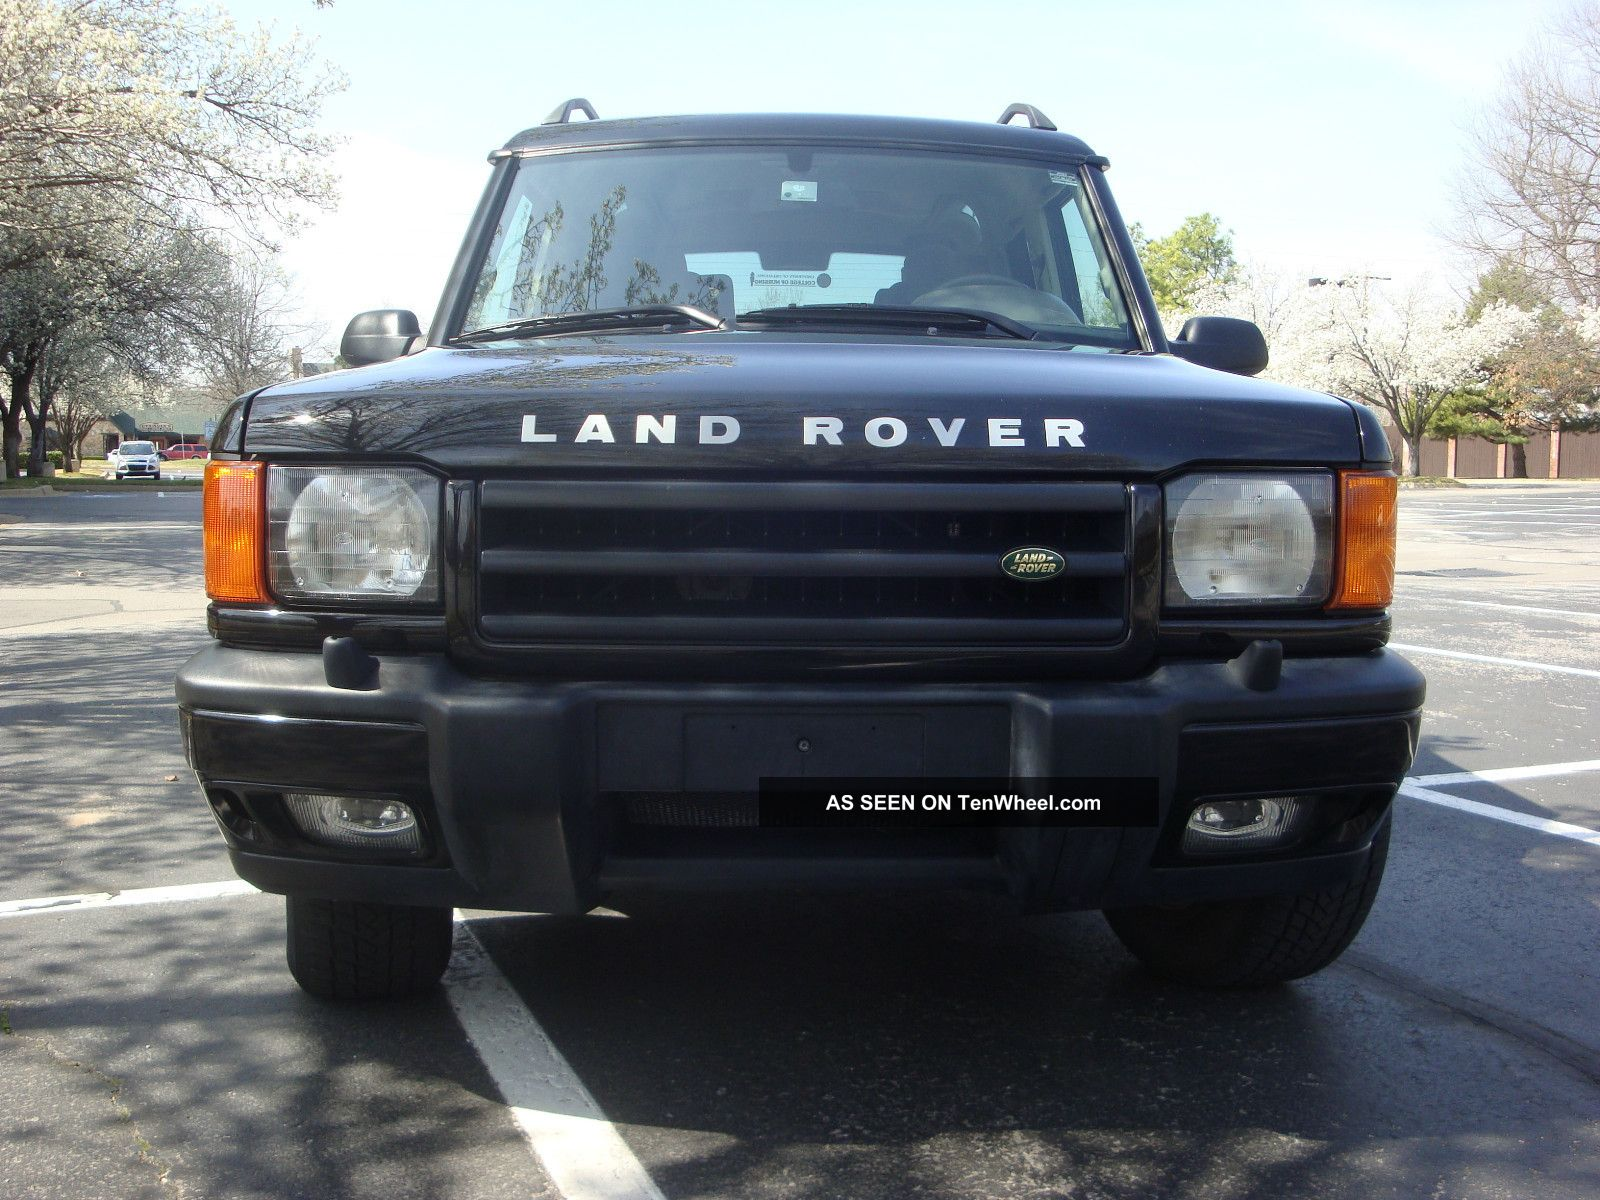 2000 land rover discovery ii. Black Bedroom Furniture Sets. Home Design Ideas